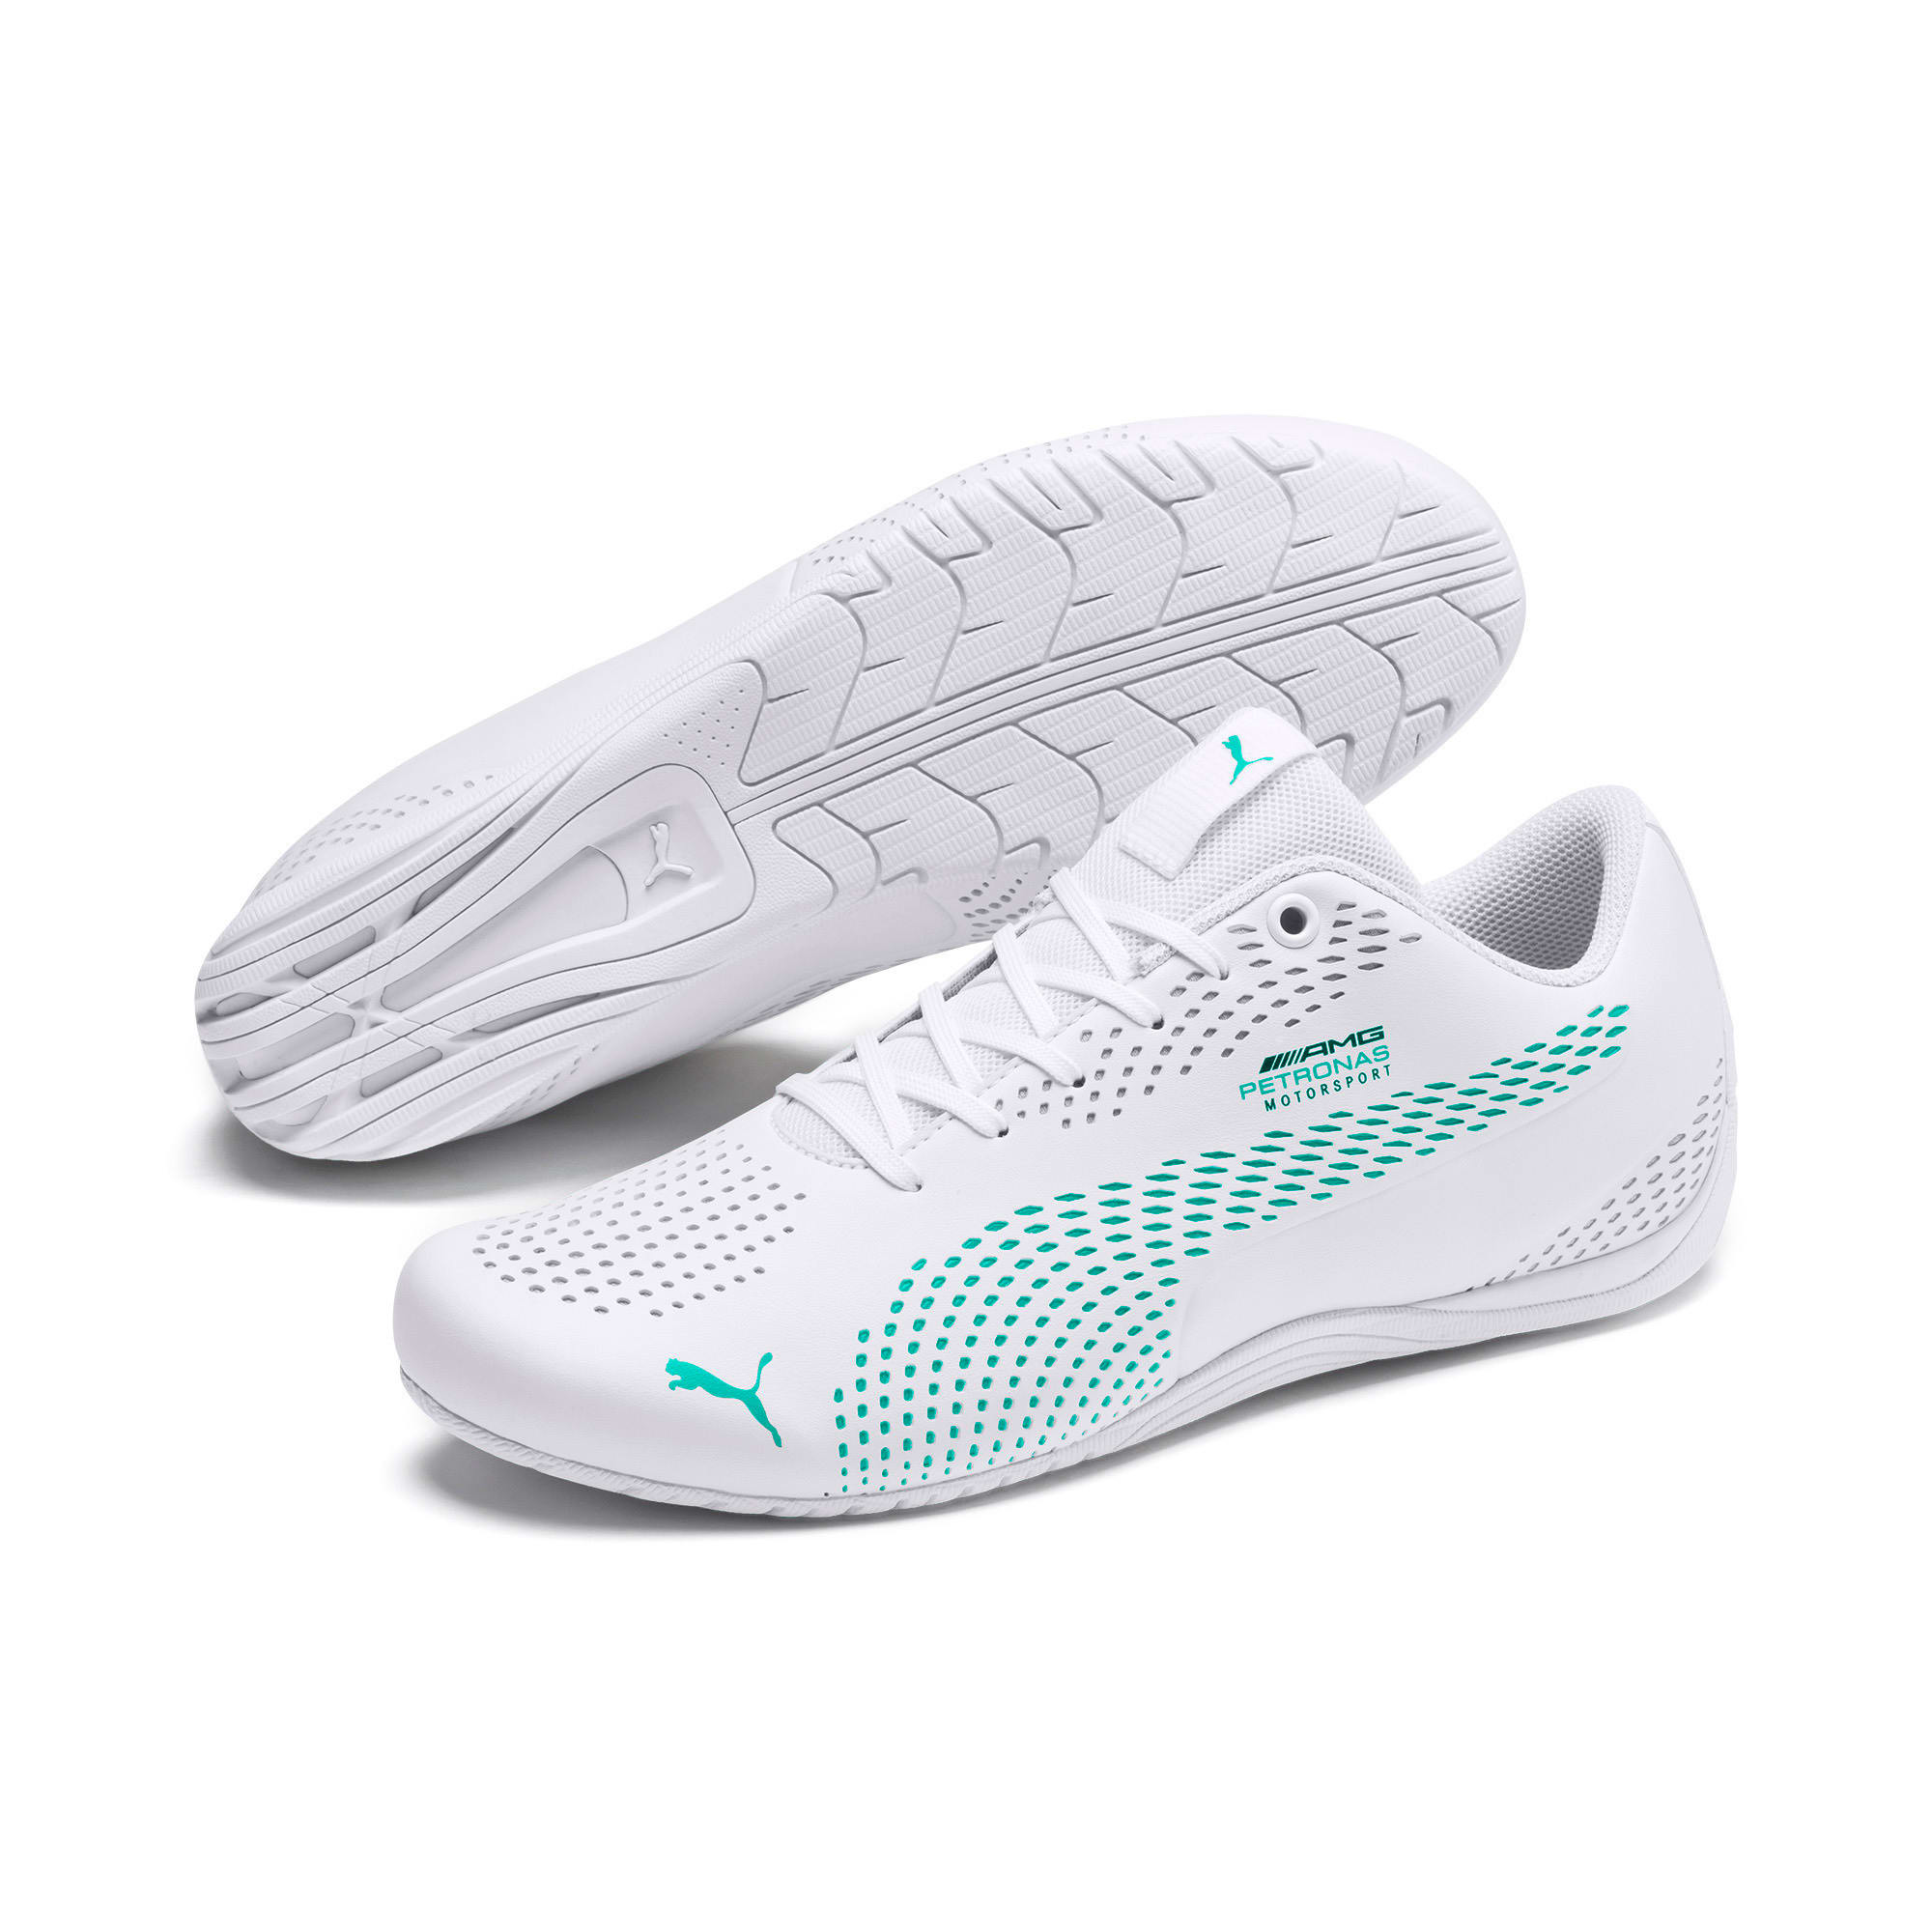 Thumbnail 4 of Mercedes AMG Petronas Drift Cat 5 Ultra II Trainers, Puma White-Spectra Green, medium-IND